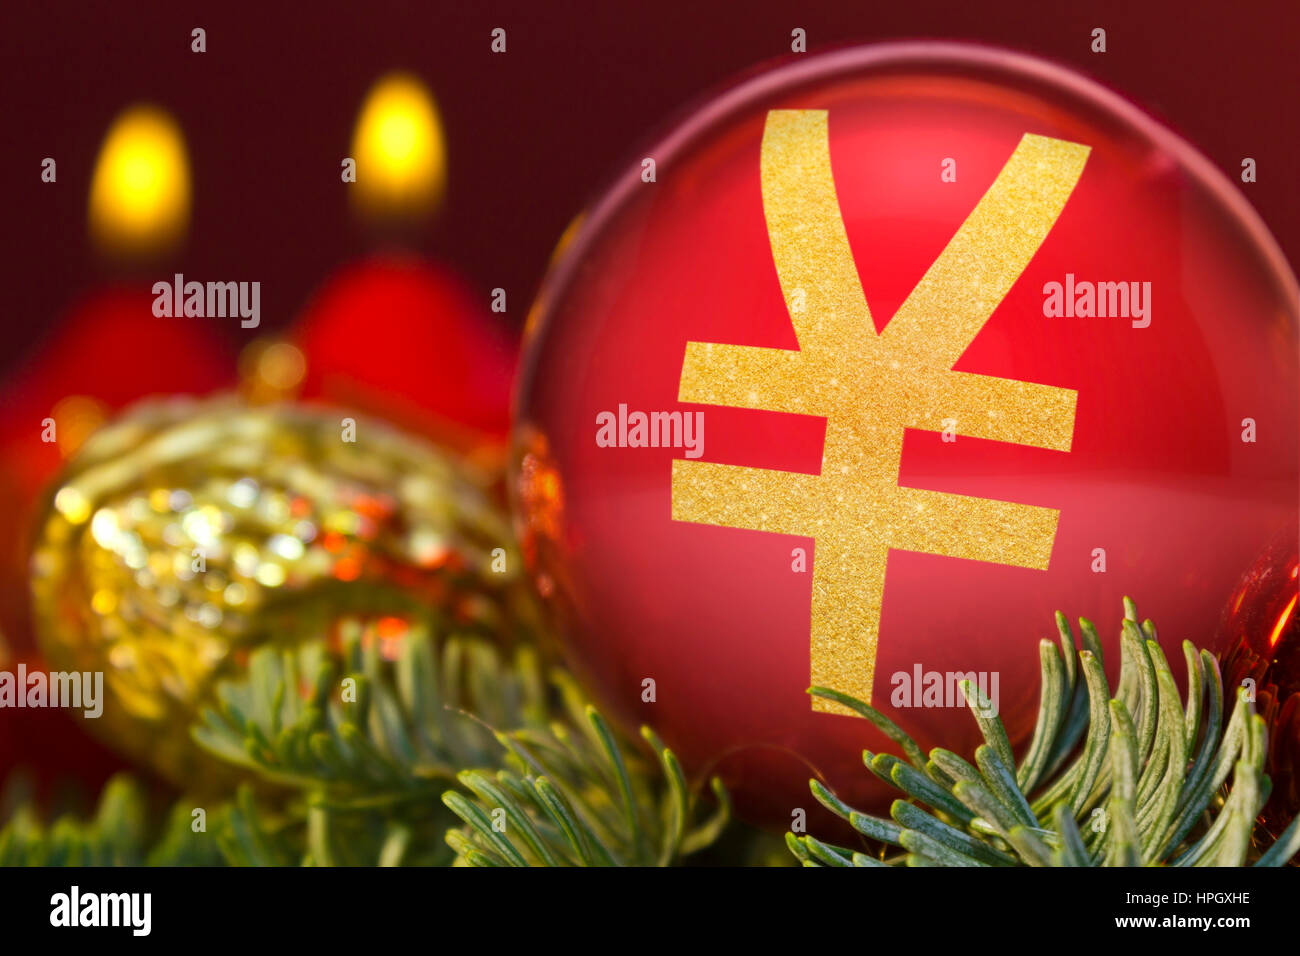 A glossy red bauble with the golden shape of a Yen symbol.(series) - Stock Image